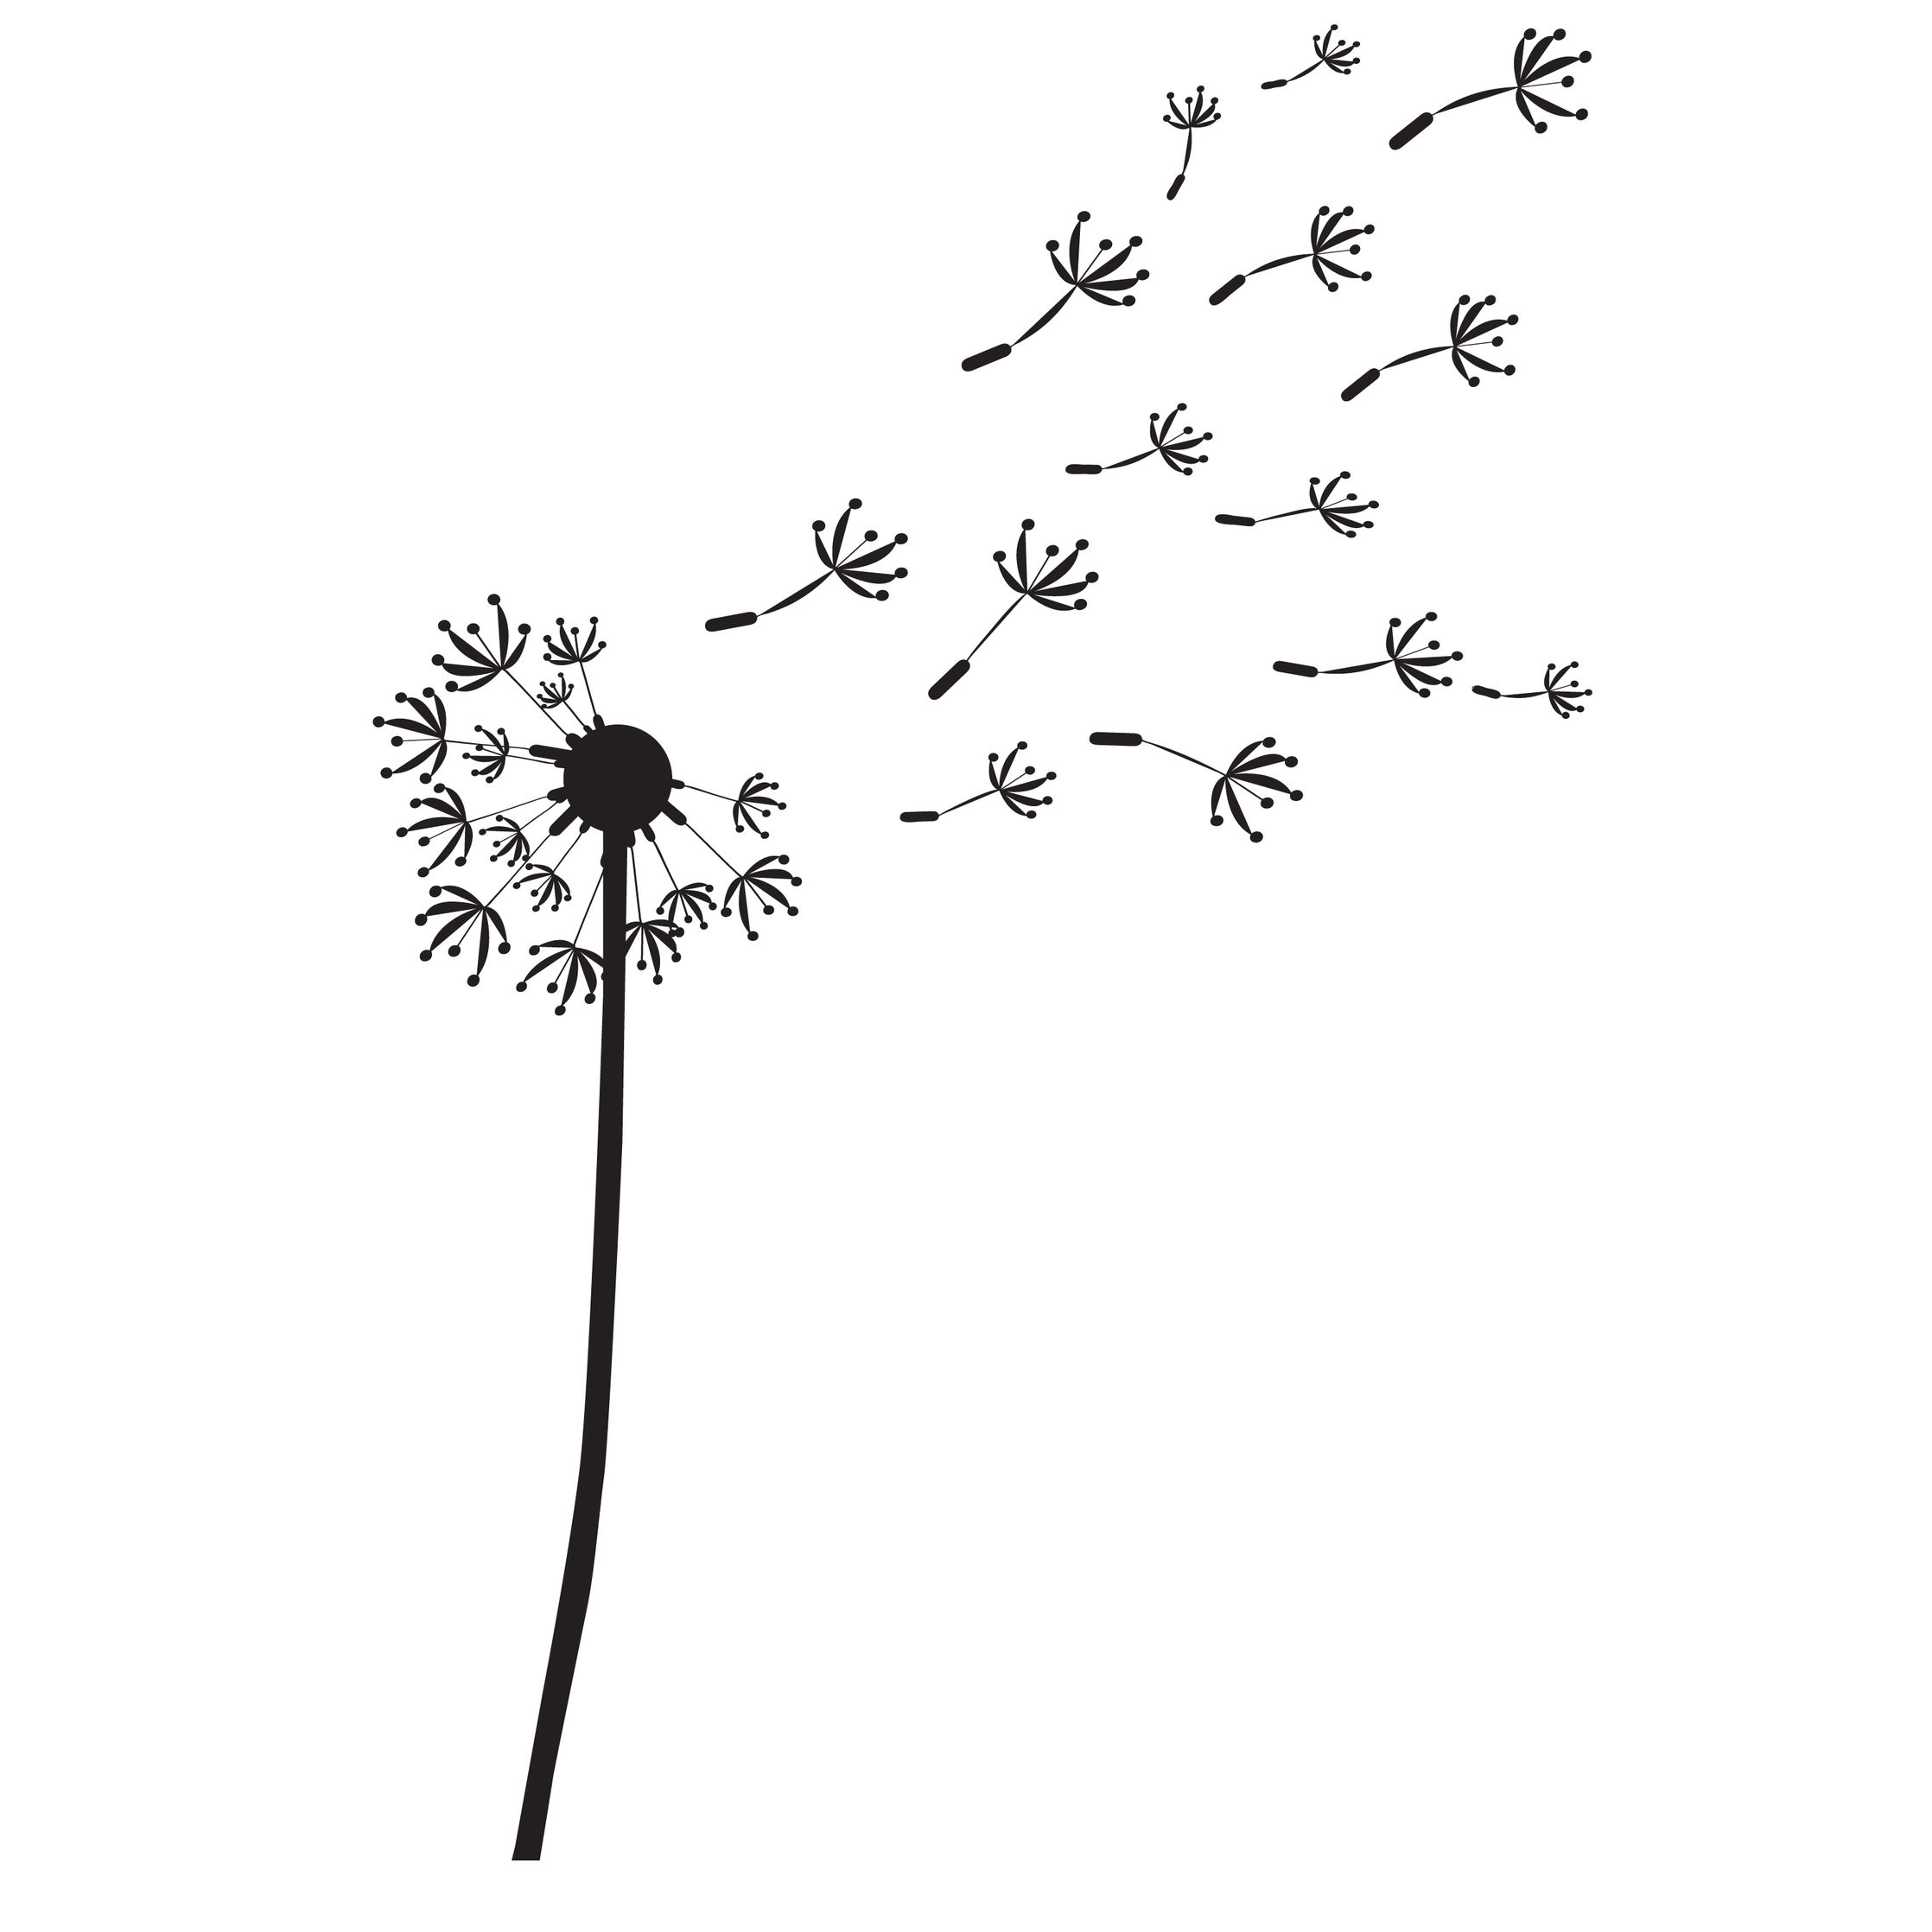 dandelion tattoos for women | Dandelion Tattoos / Meanings and Pictures